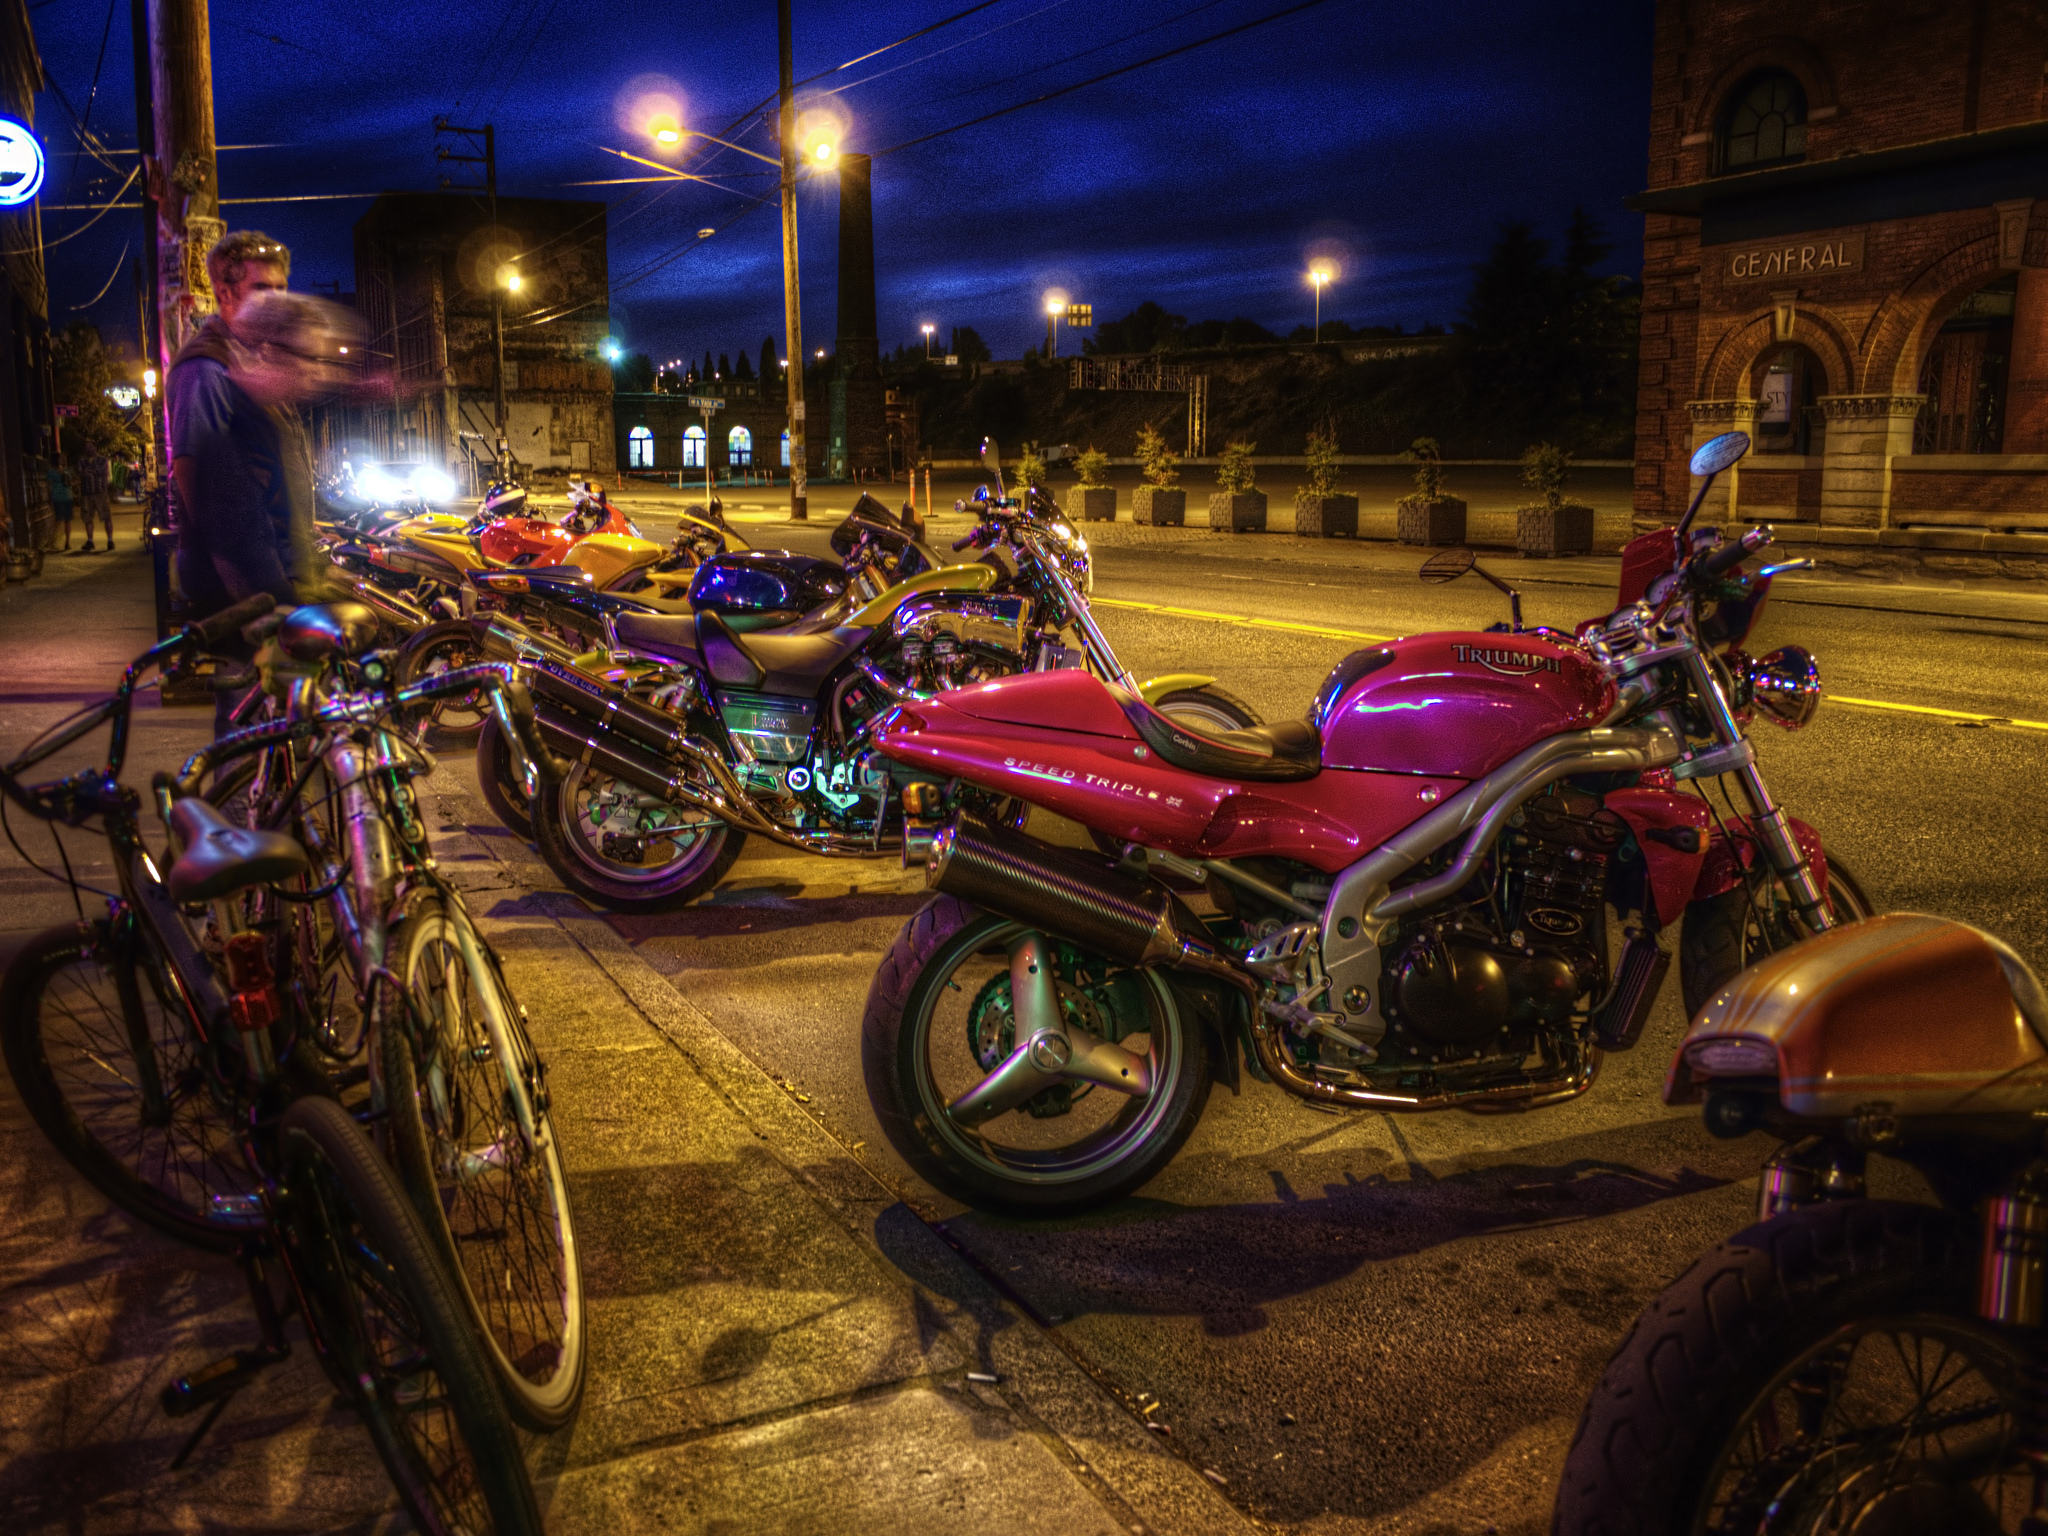 Located in Georgetown, Smarty Pants is a dive-y biker bar resplendent with bikes on display above the entrance, cheap beer, stiff drinks and the race usually on the tube. (Image: vmax137 / https://flic.kr/p/fqYrDJ)